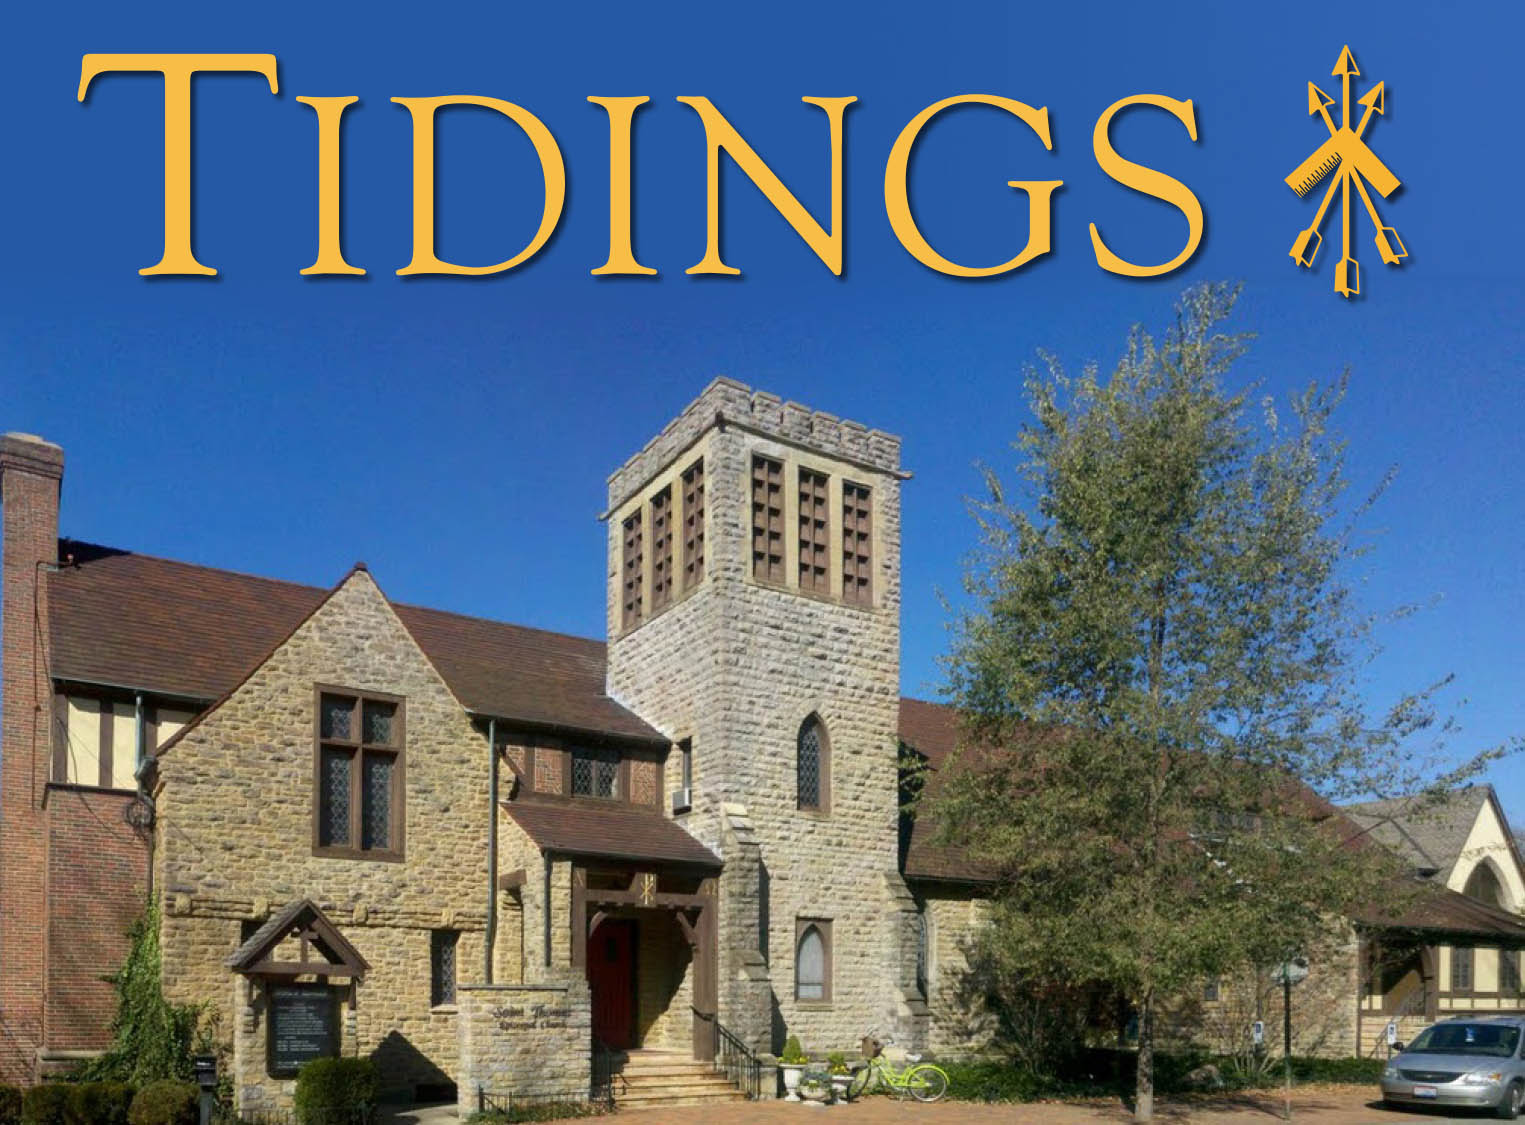 tidings-web-logo